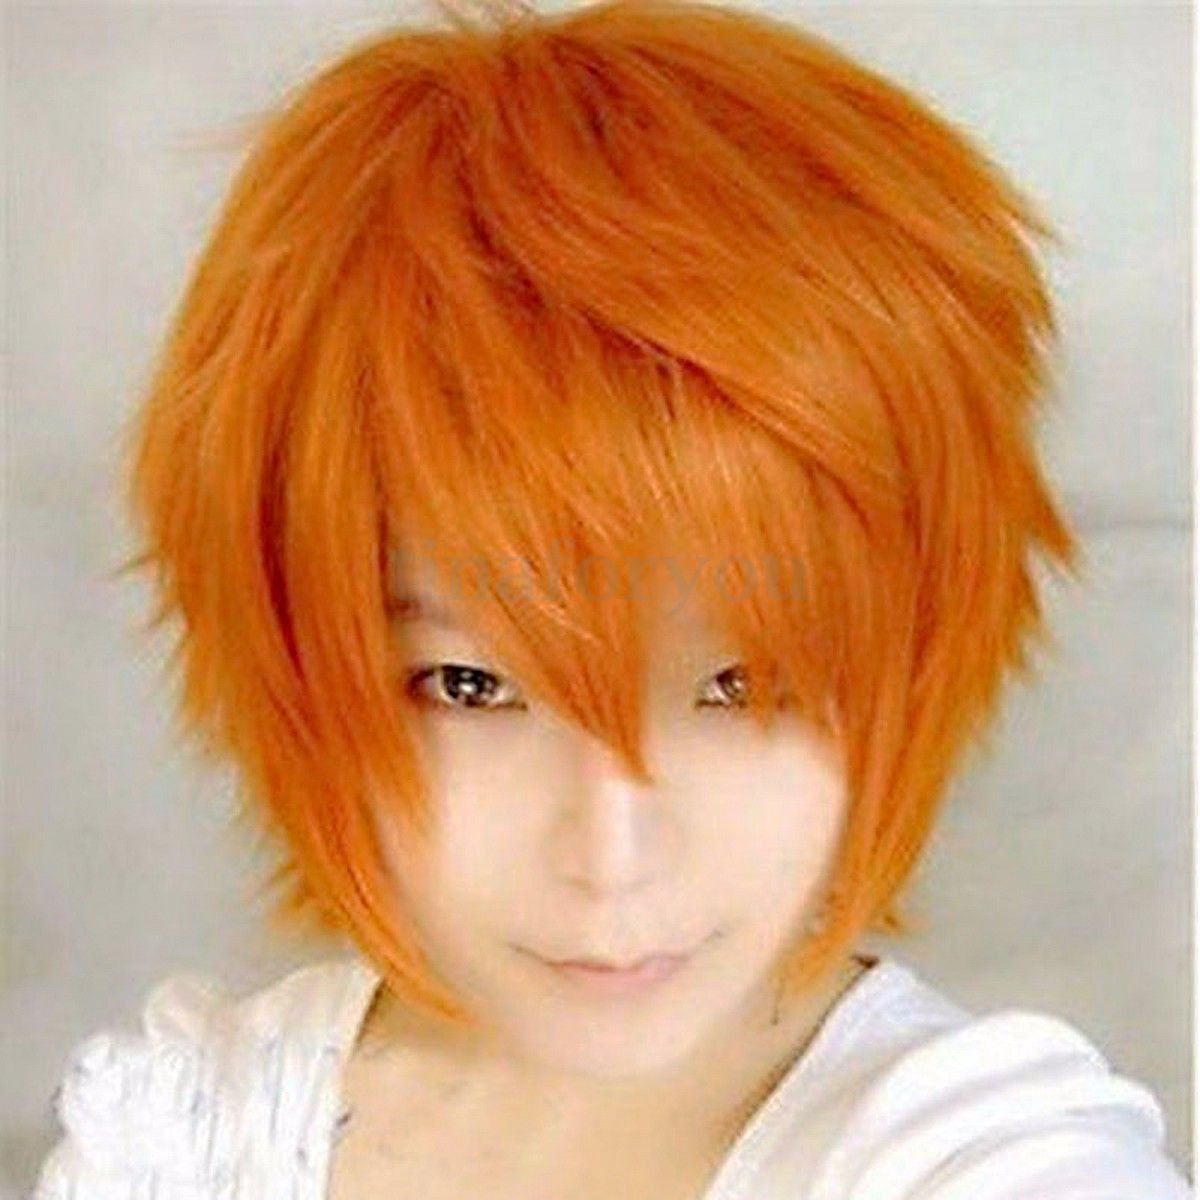 Boy hair color images short hair cosplay wig  cosplay  pinterest  cosplay wigs wig and